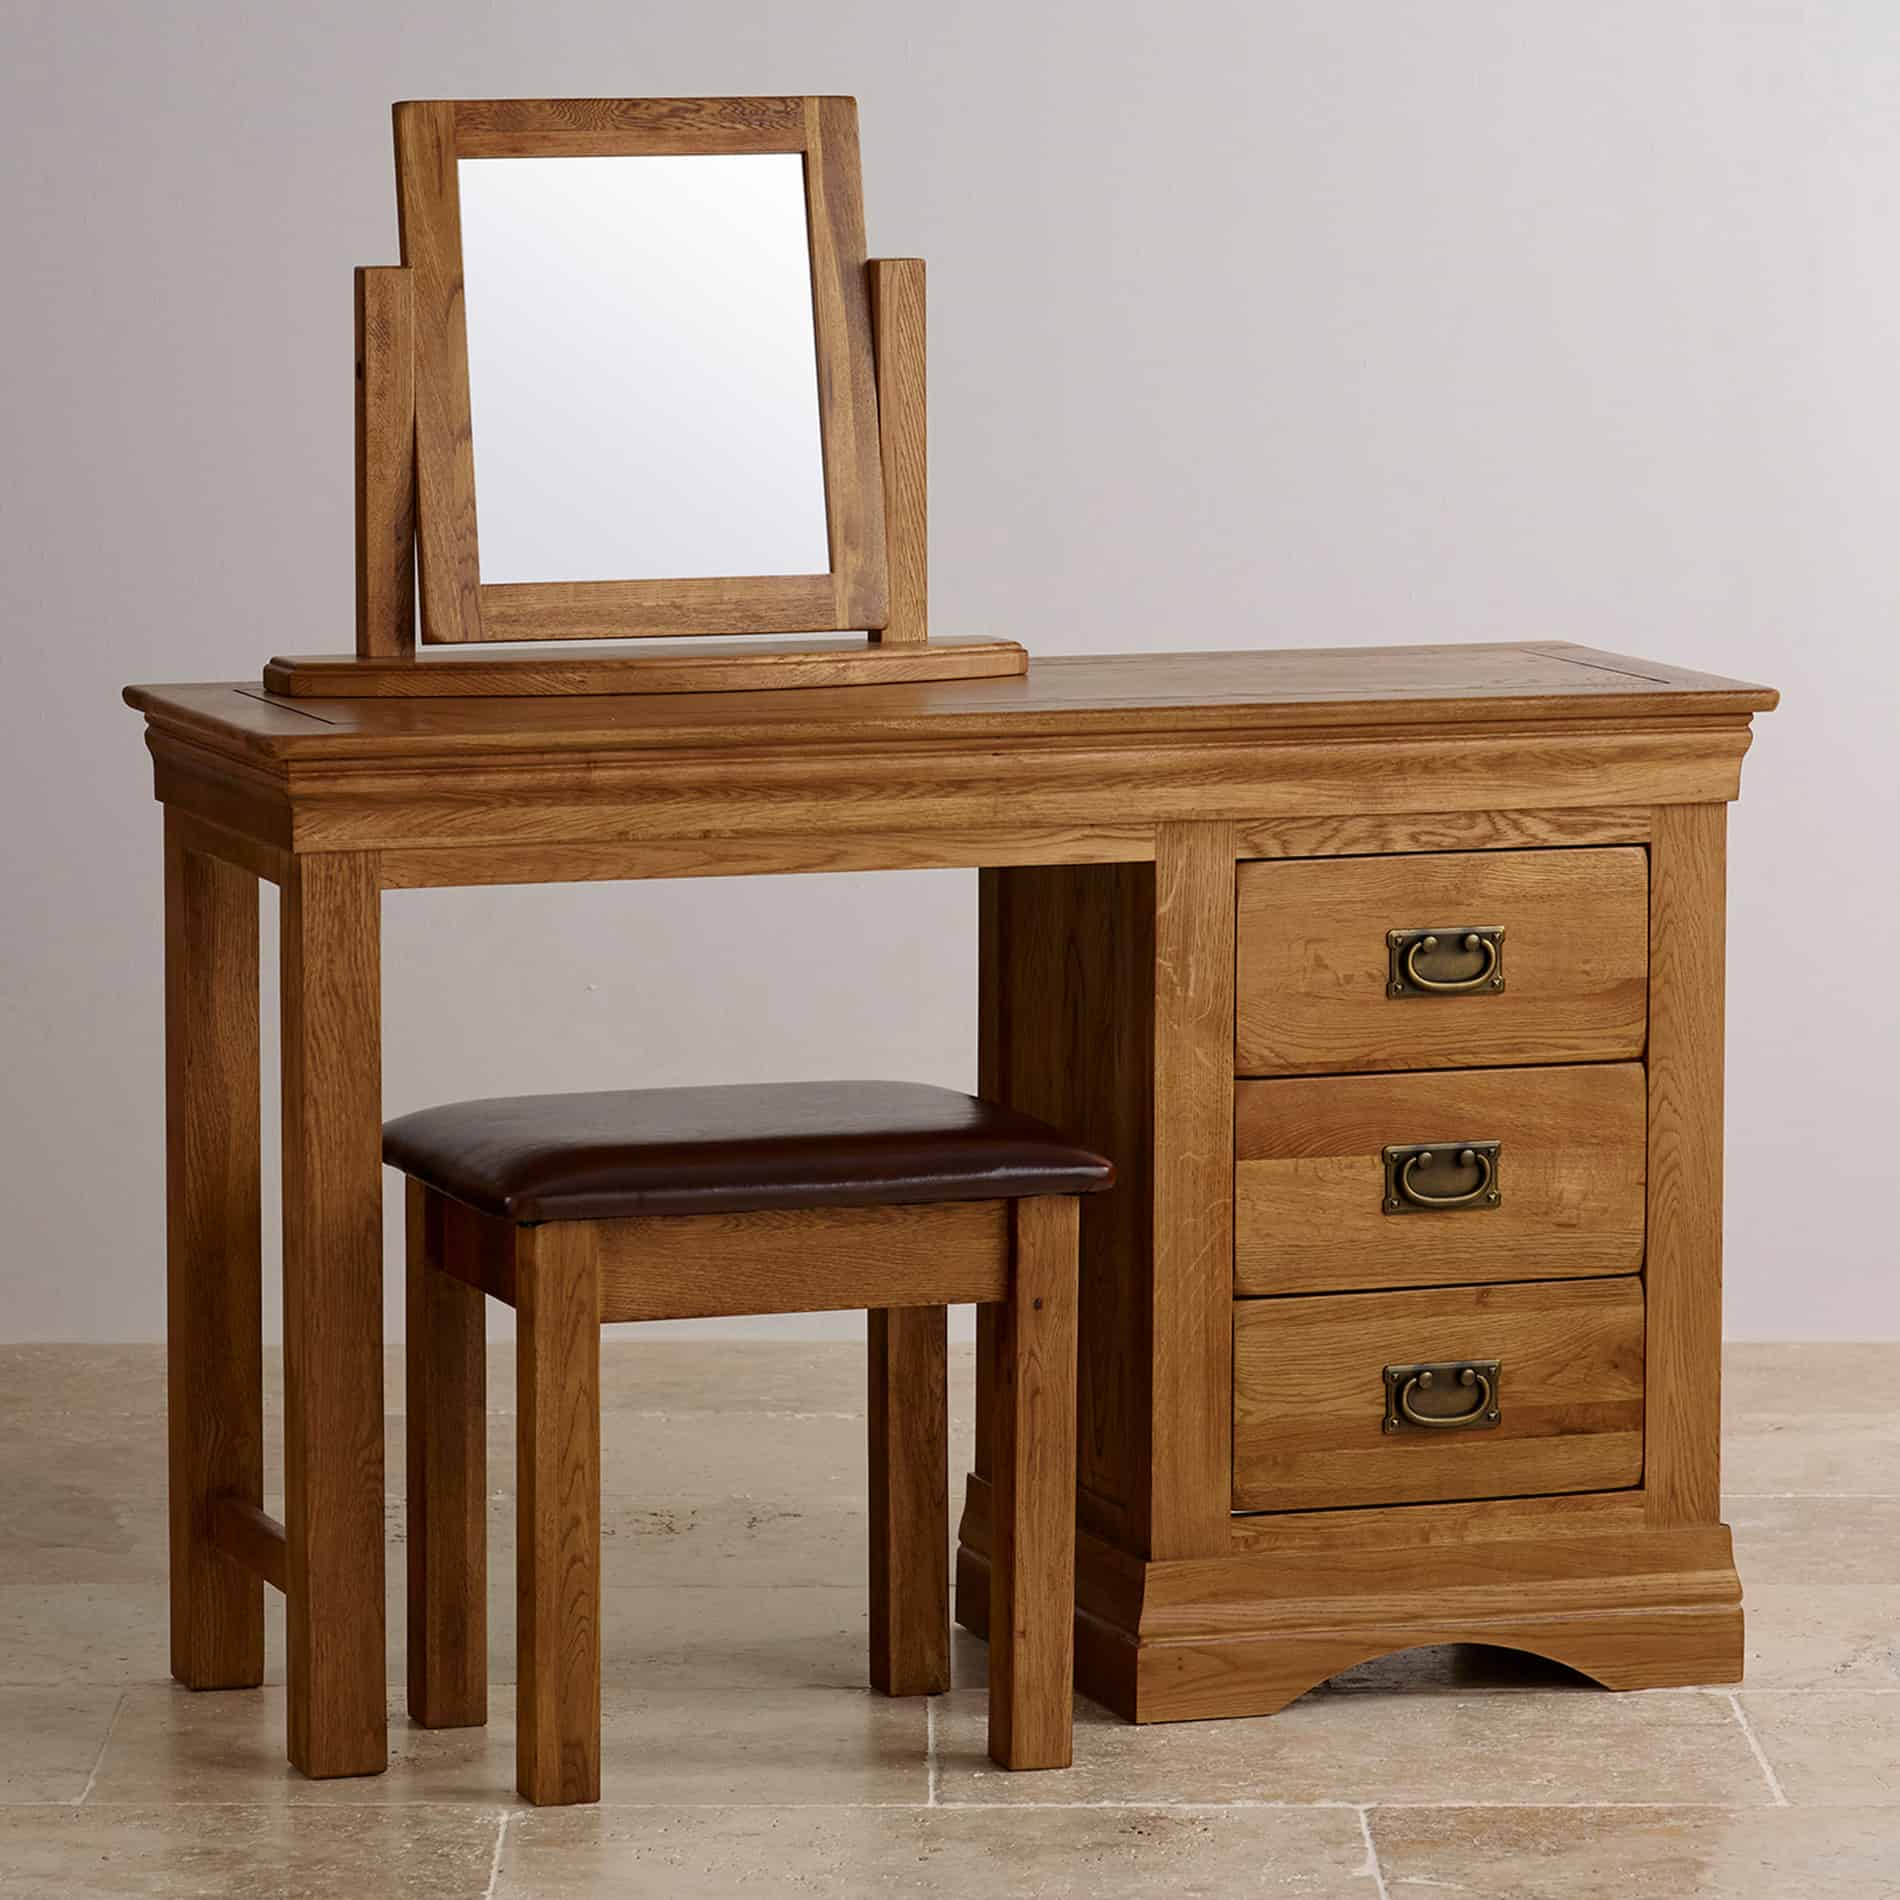 10 Cozy Decor Ideas For Your New Year S Eve Dining Room: Vanity Table For Your Personal Boudoir